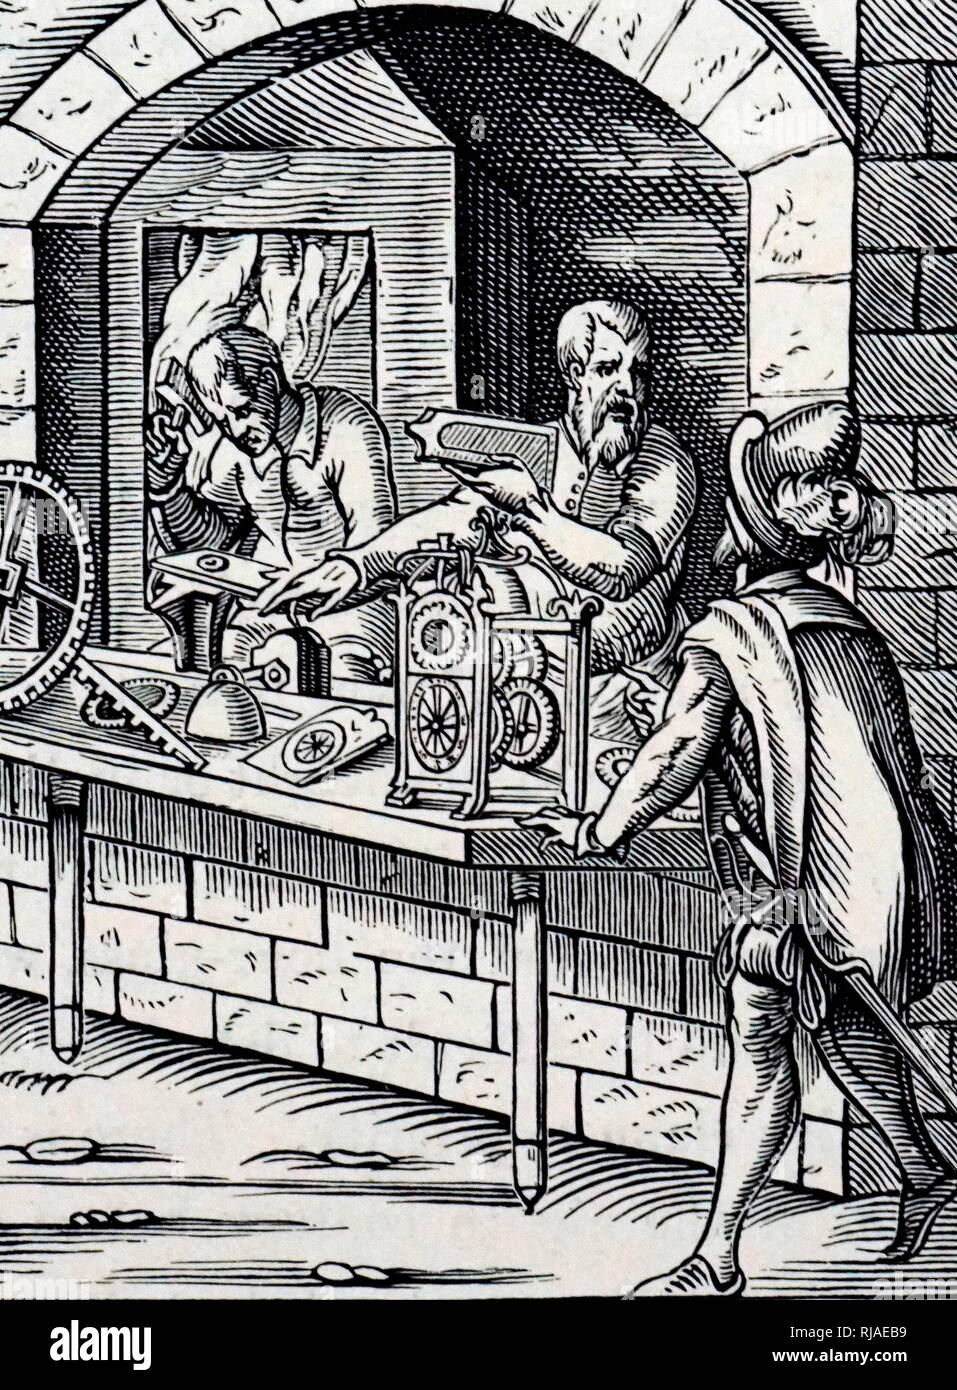 A woodcut engraving depicting a clockmaker by Jost Amman (1539-1591) a Swiss-German artist. Dated 16th century - Stock Image